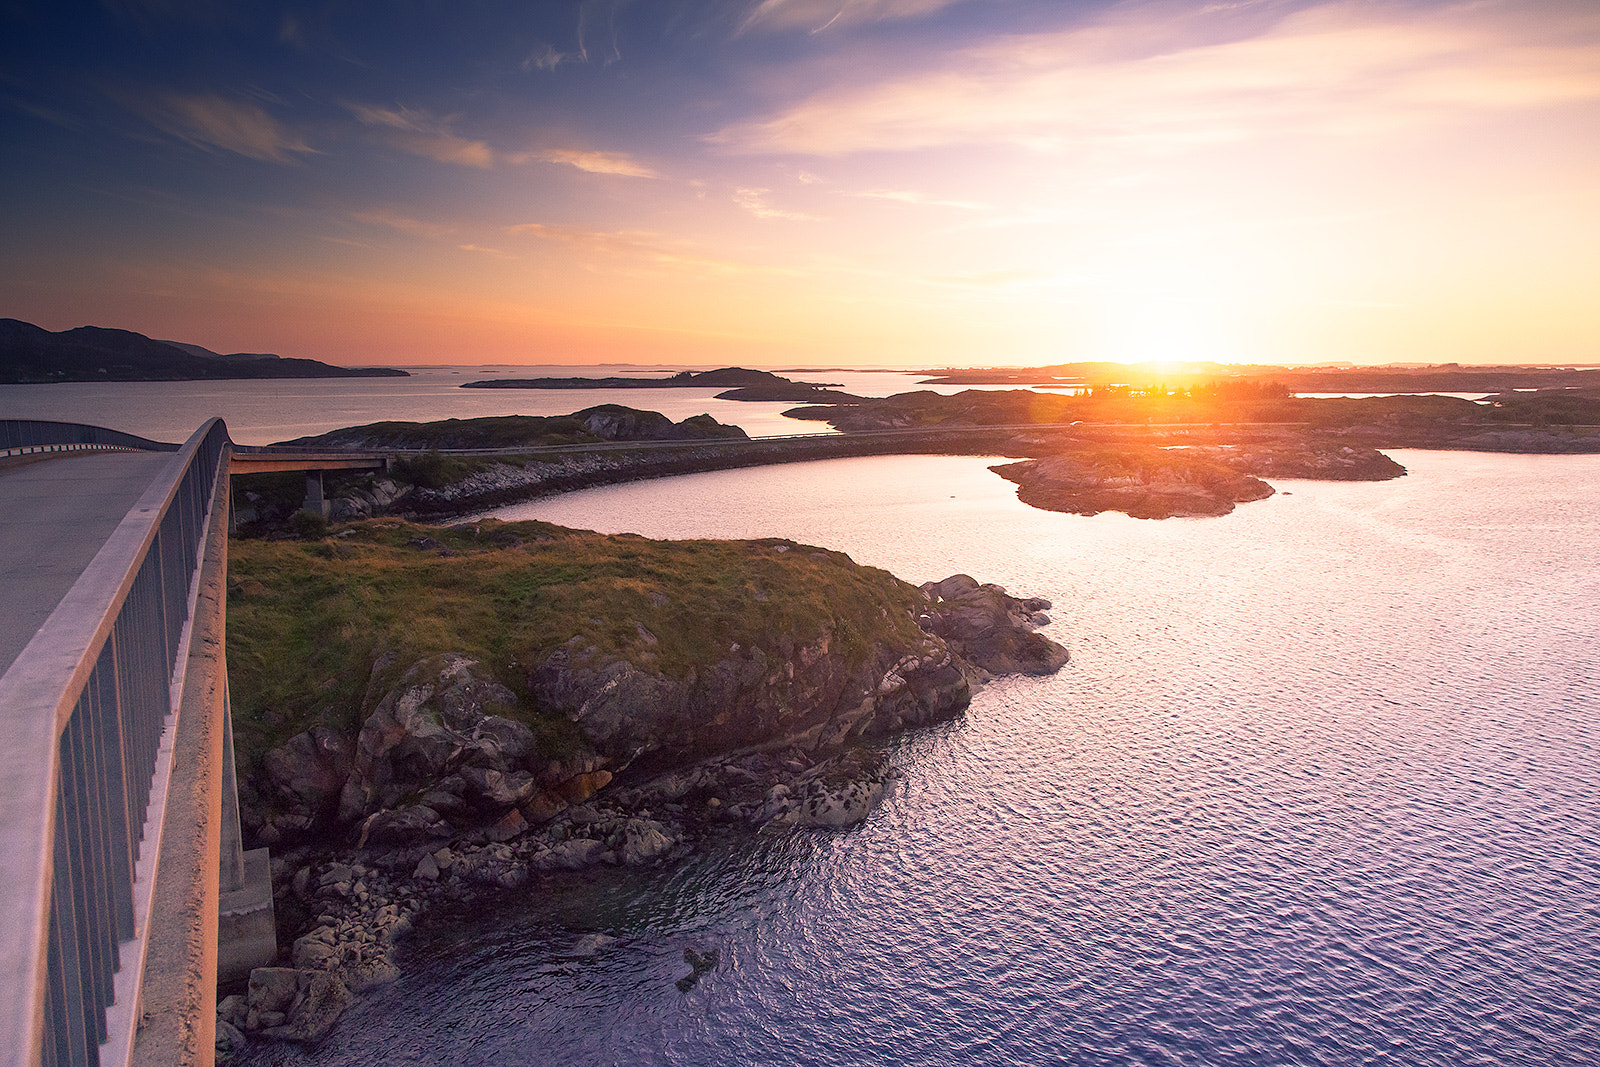 Photograph Herøy sunset by Jon Packer on 500px